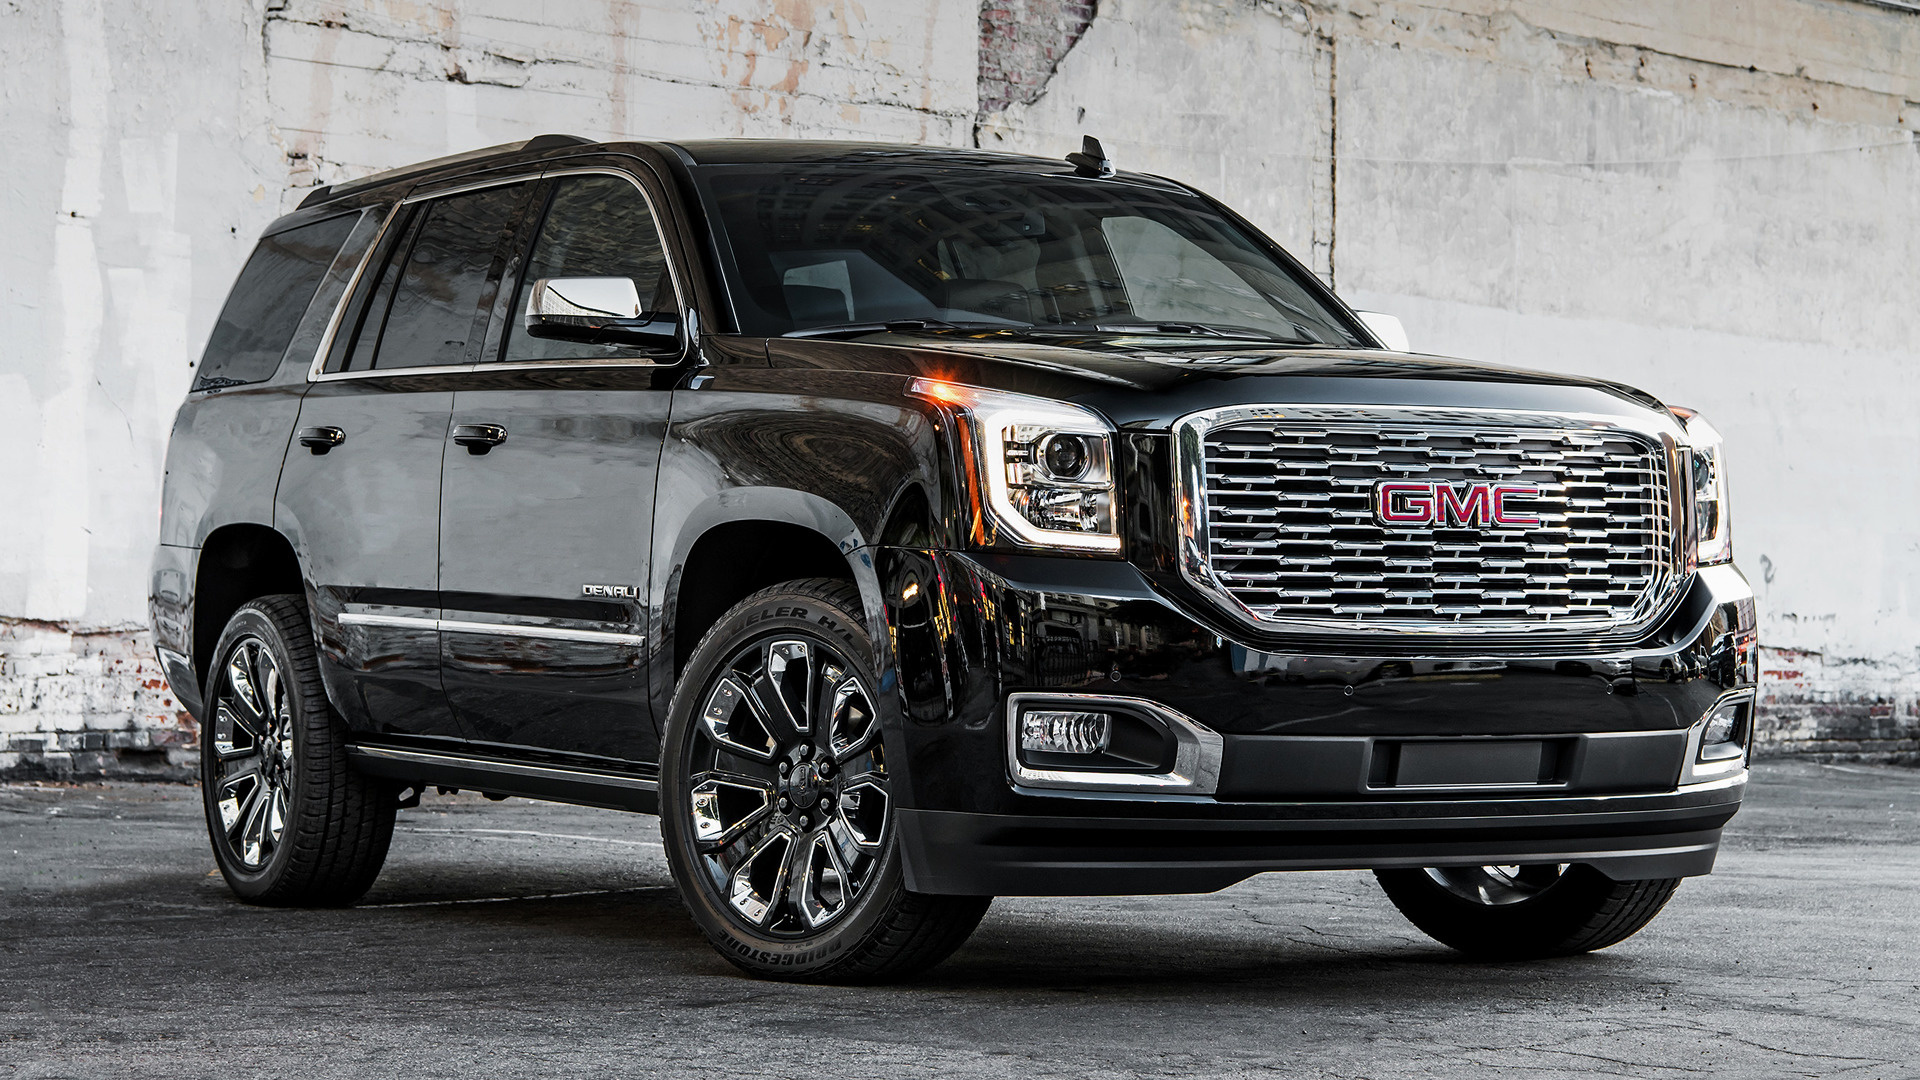 2018 Gmc Yukon Denali Ultimate Black Edition Wallpapers